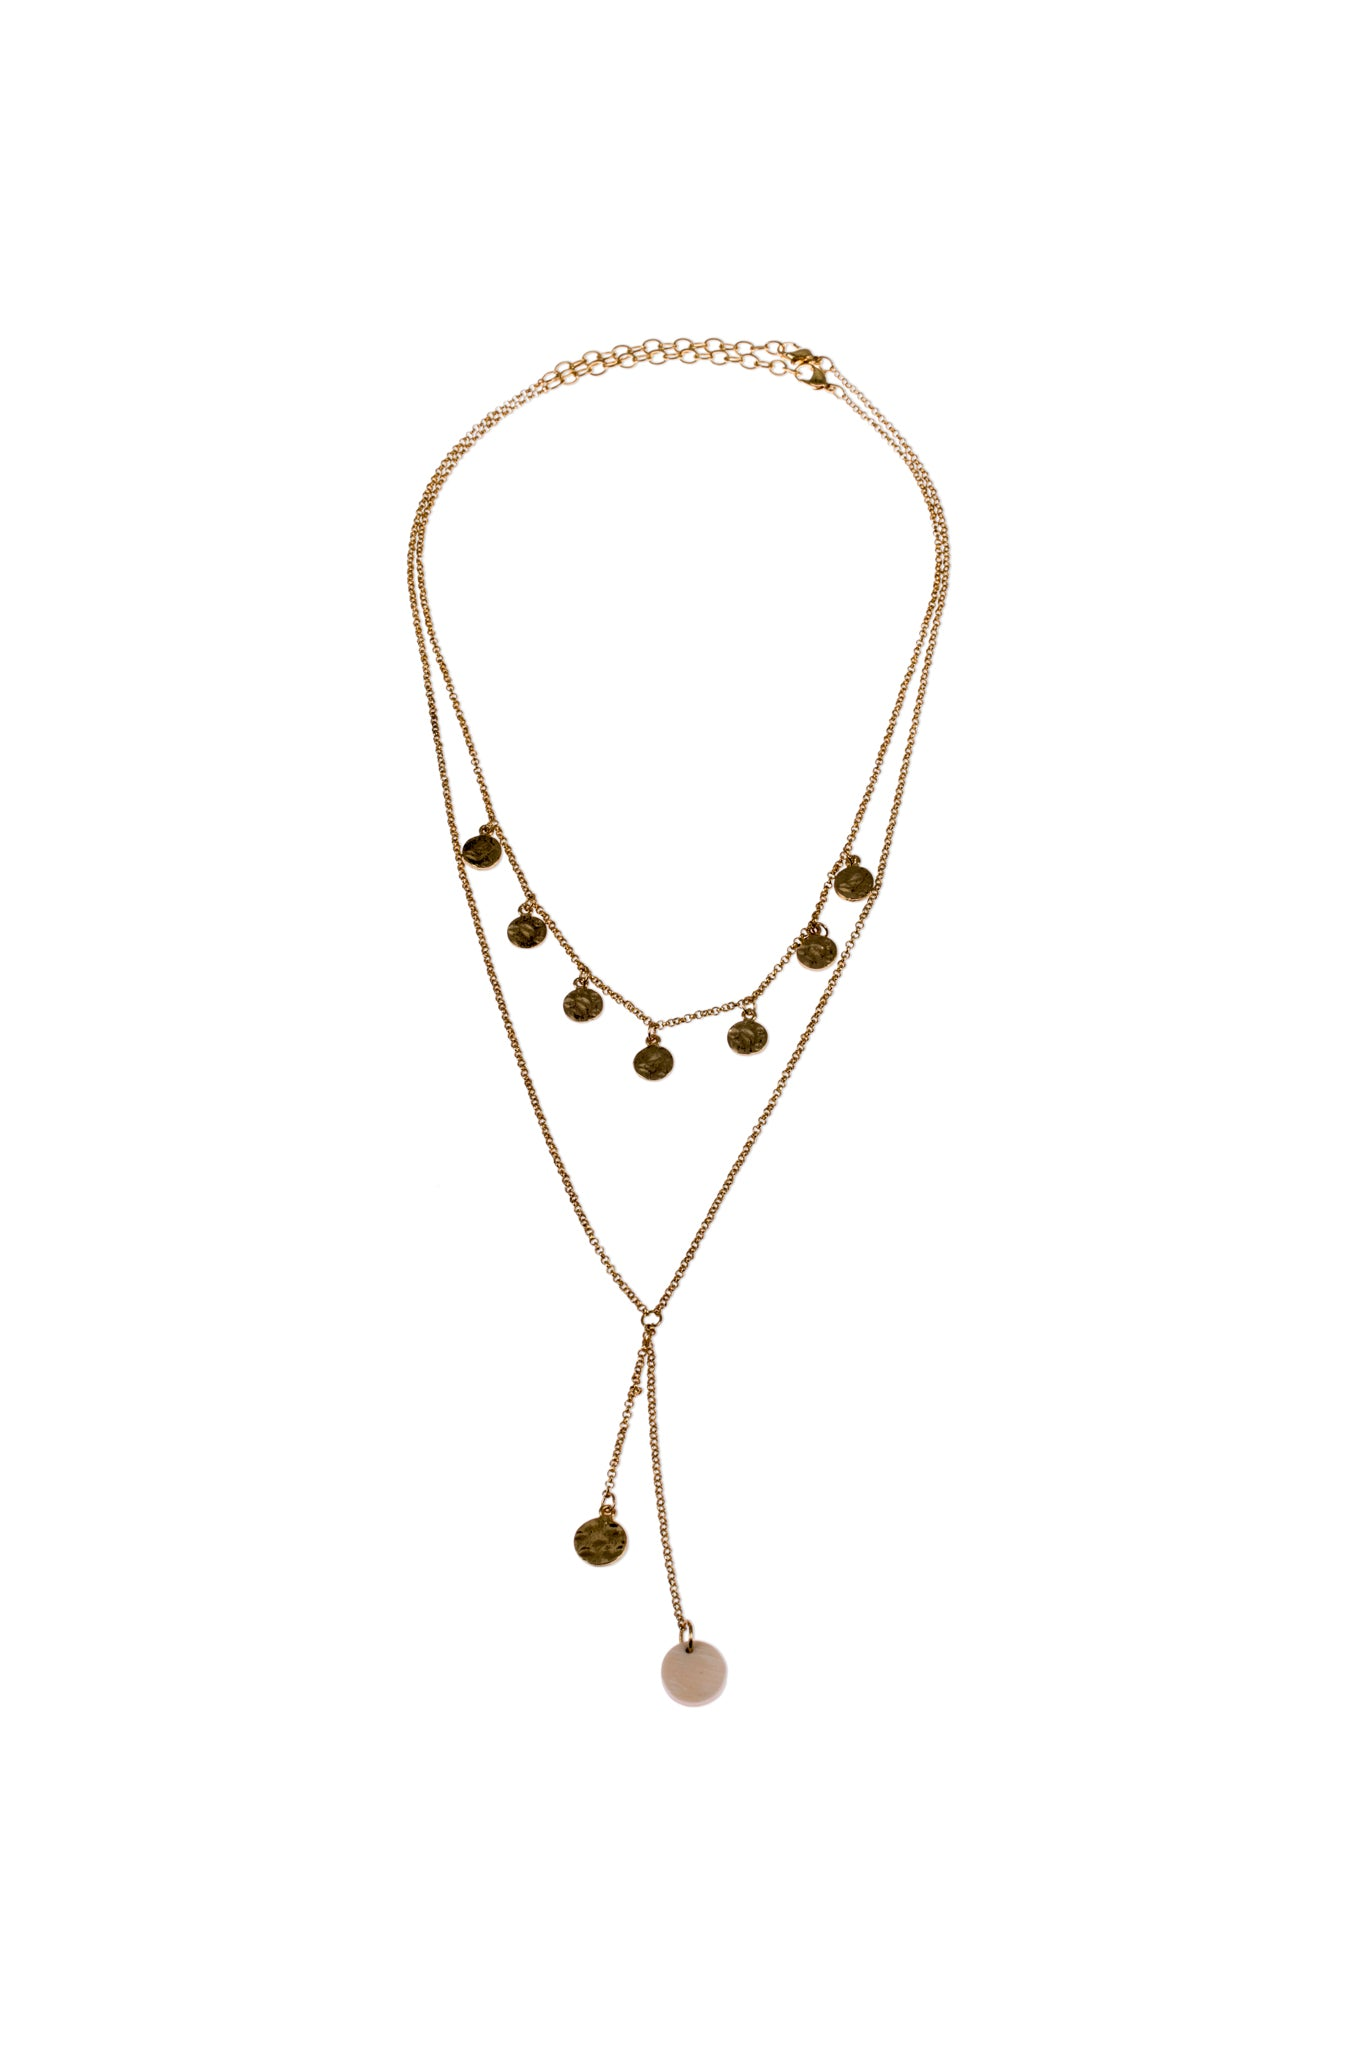 Arya necklace by Daughters of the Ganges